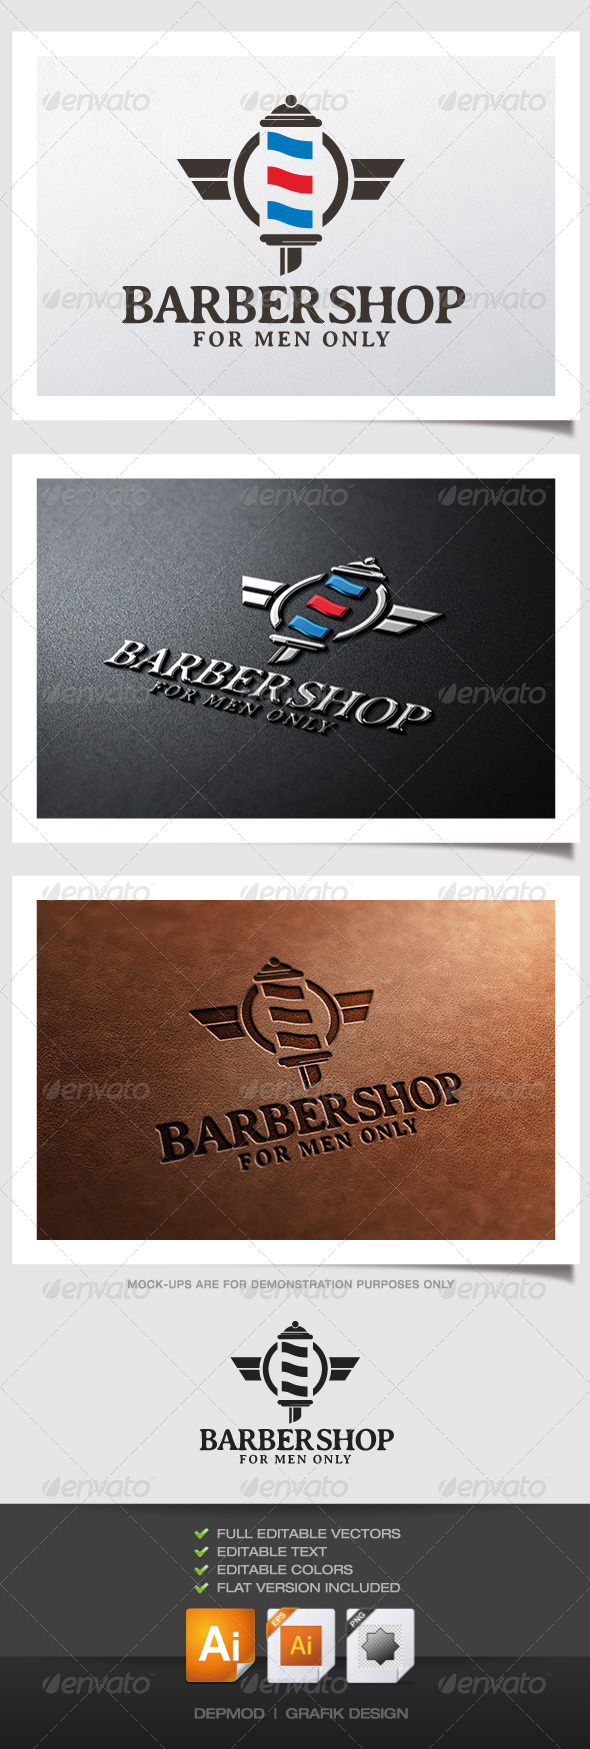 GraphicRiver Barber Shop Logo 5019856